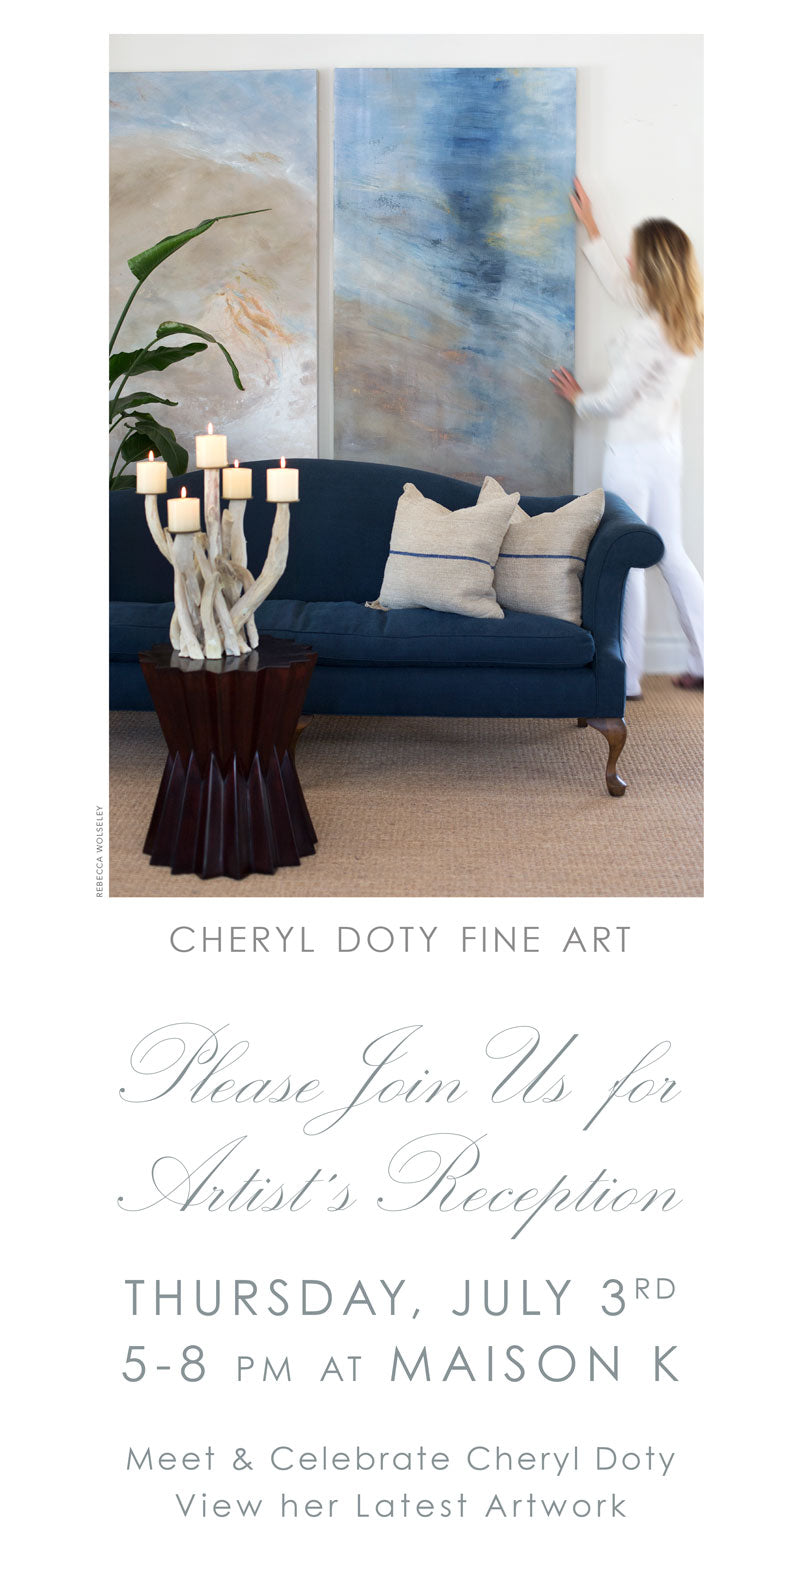 Please Join Us and Meet Cheryl Doty, Artist